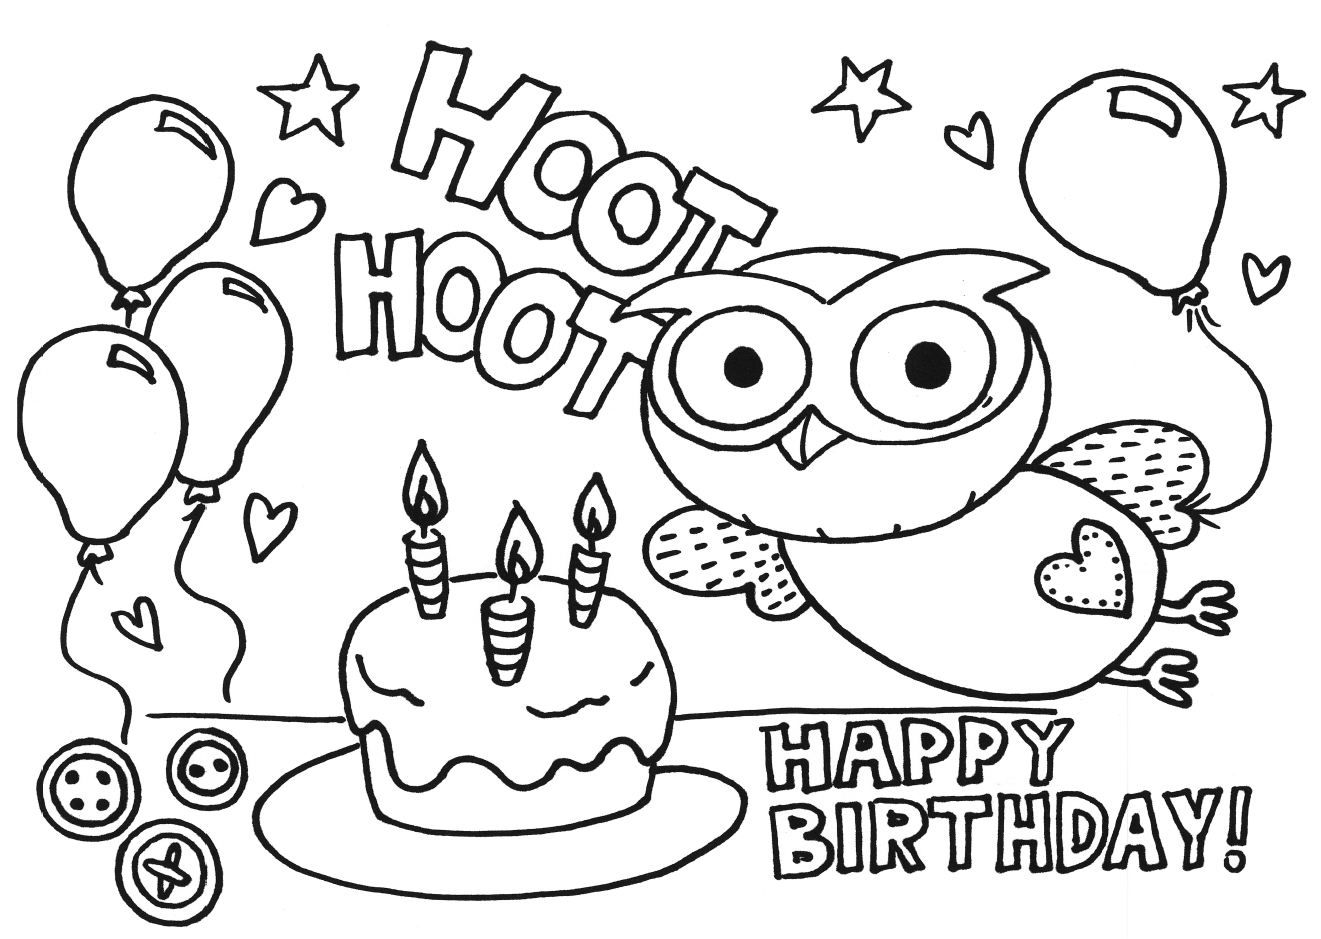 Coloring Pages Happy Birthday Cards Coloring Pages 1000 images about happy birthday coloring pages on pinterest birthdays and books